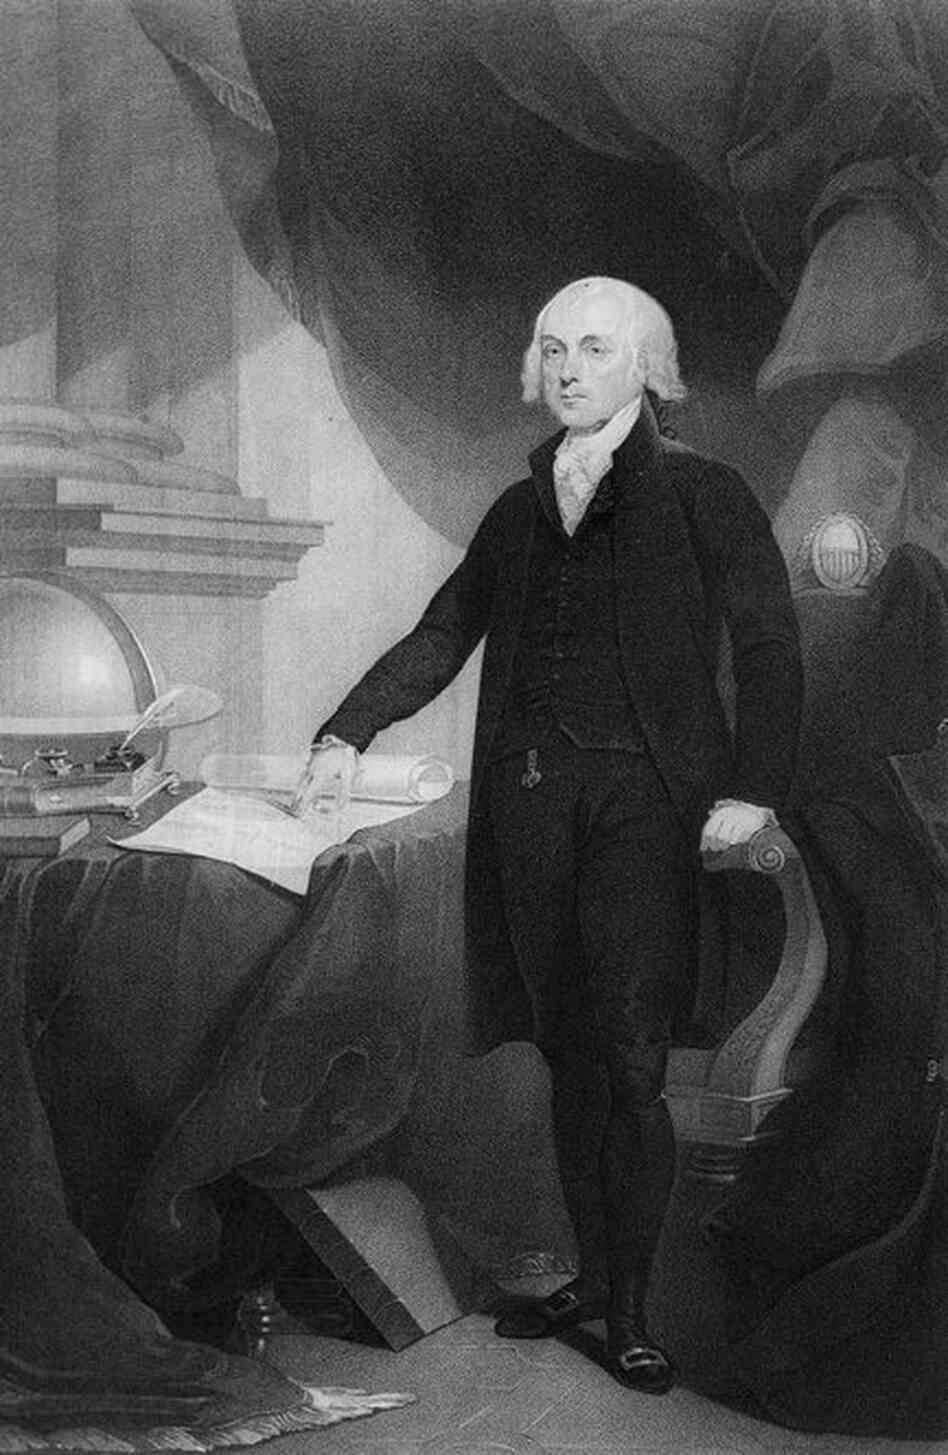 James Madison, fourth president of the United States, 5 feet 4 inches